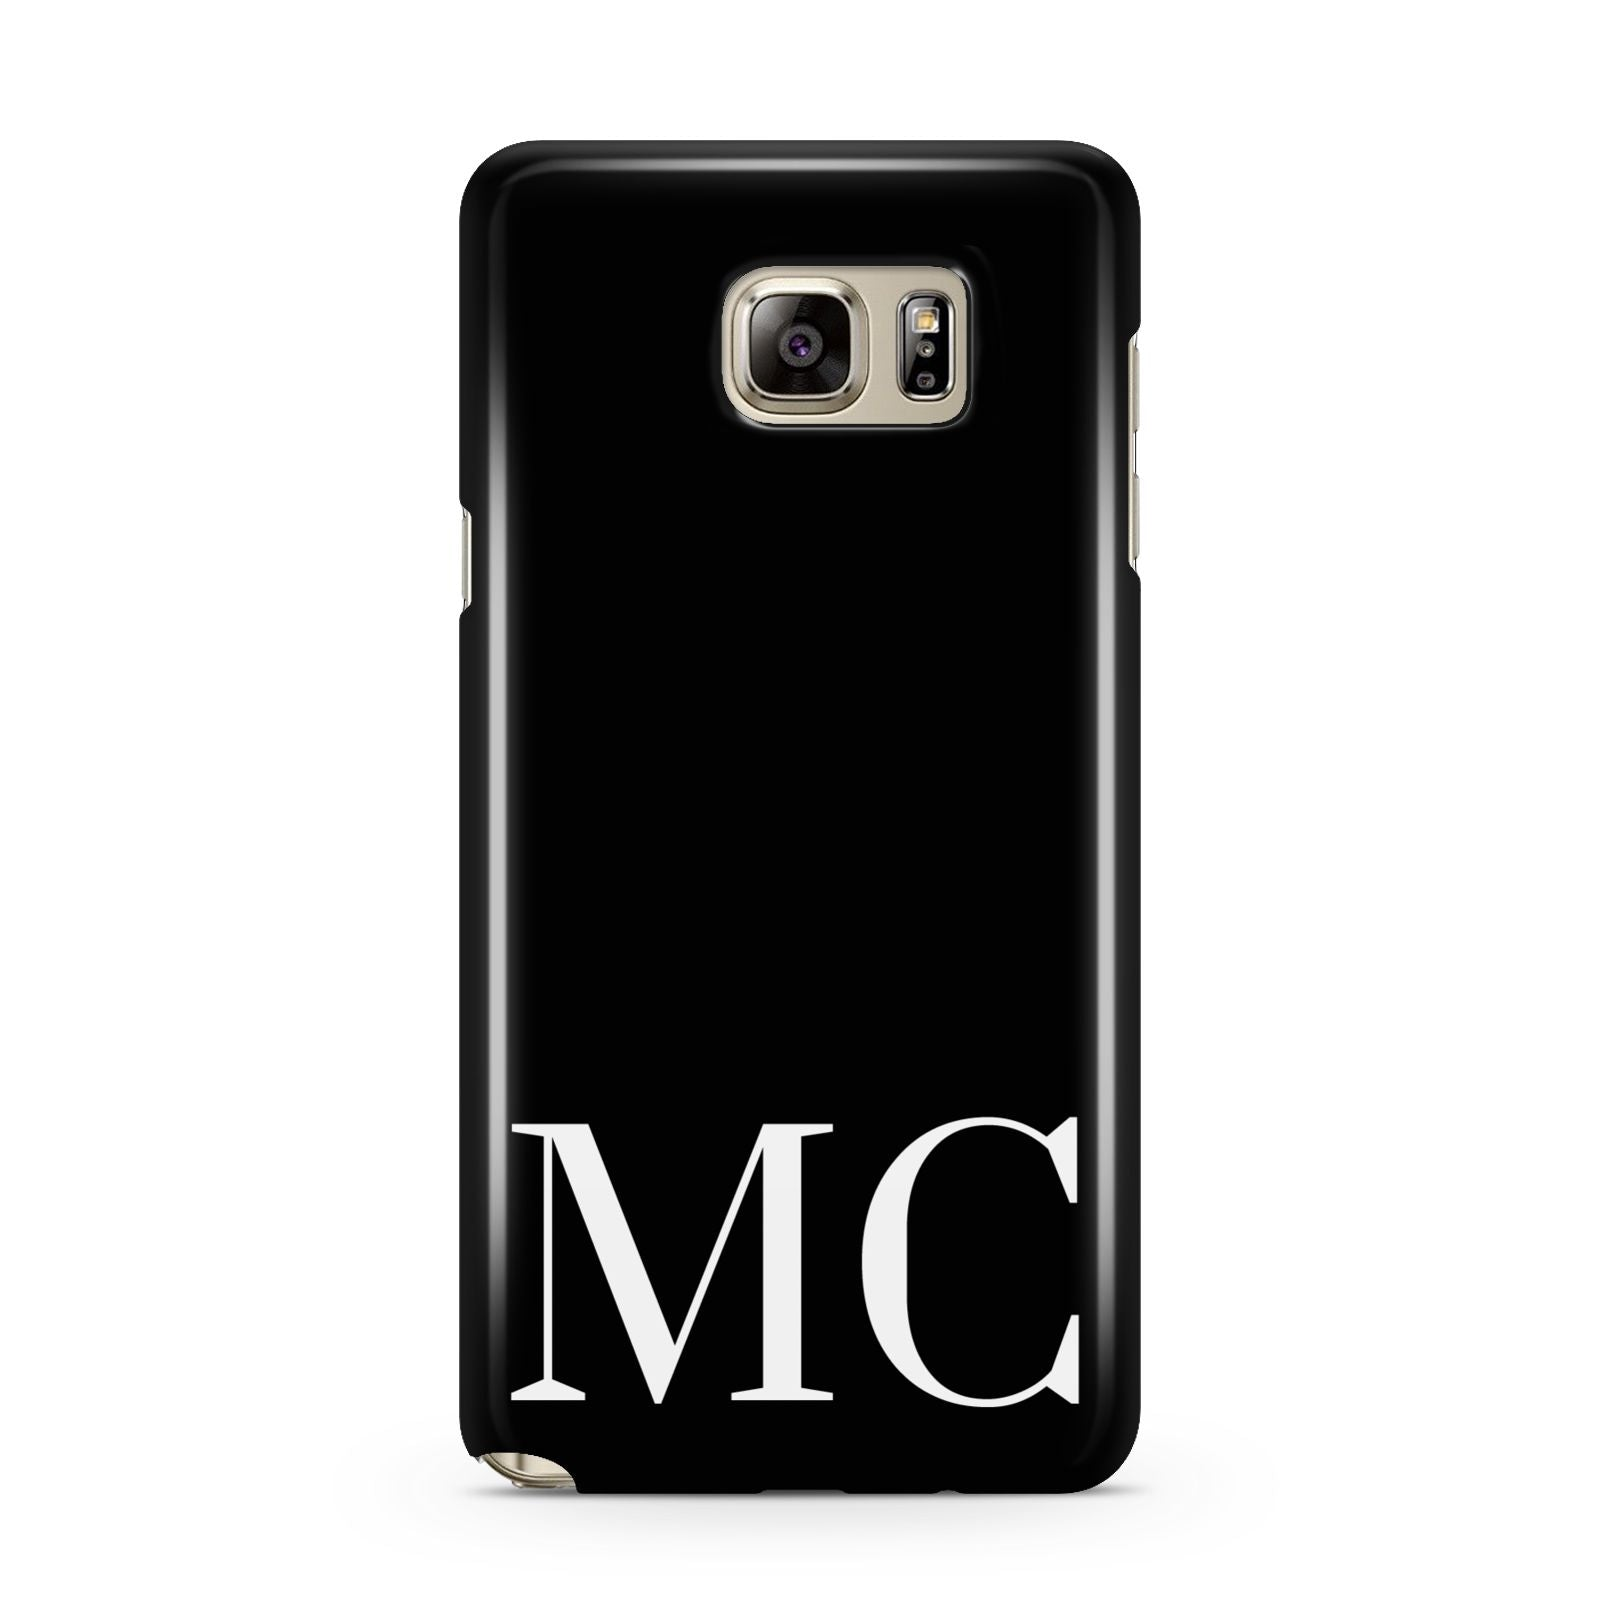 Initials Personalised 1 Samsung Galaxy Note 5 Case